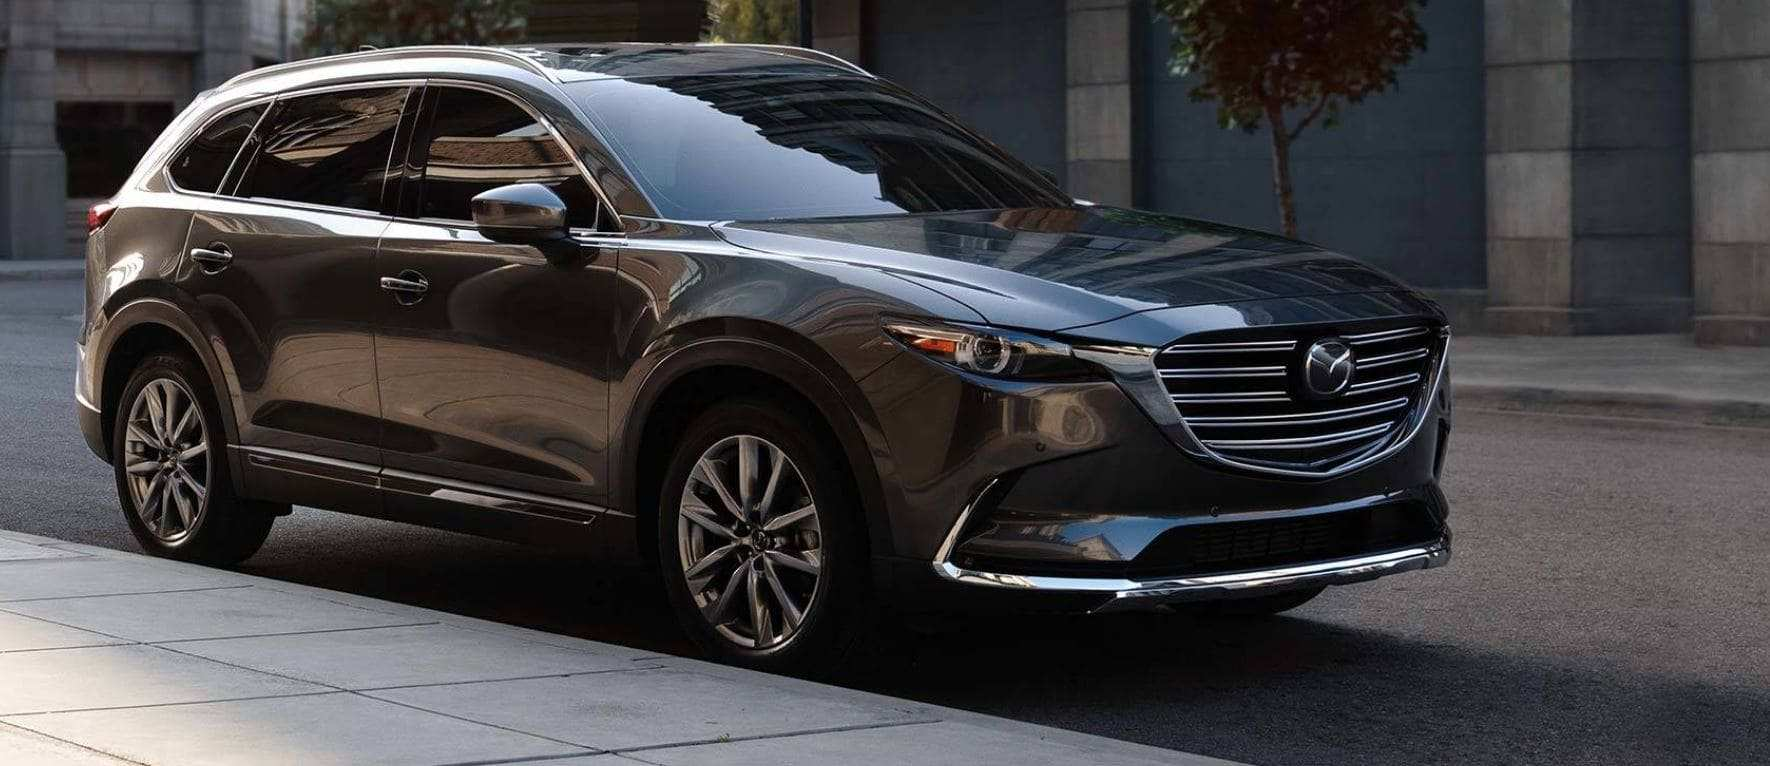 60 The Best 2019 Mazda CX 9 First Drive